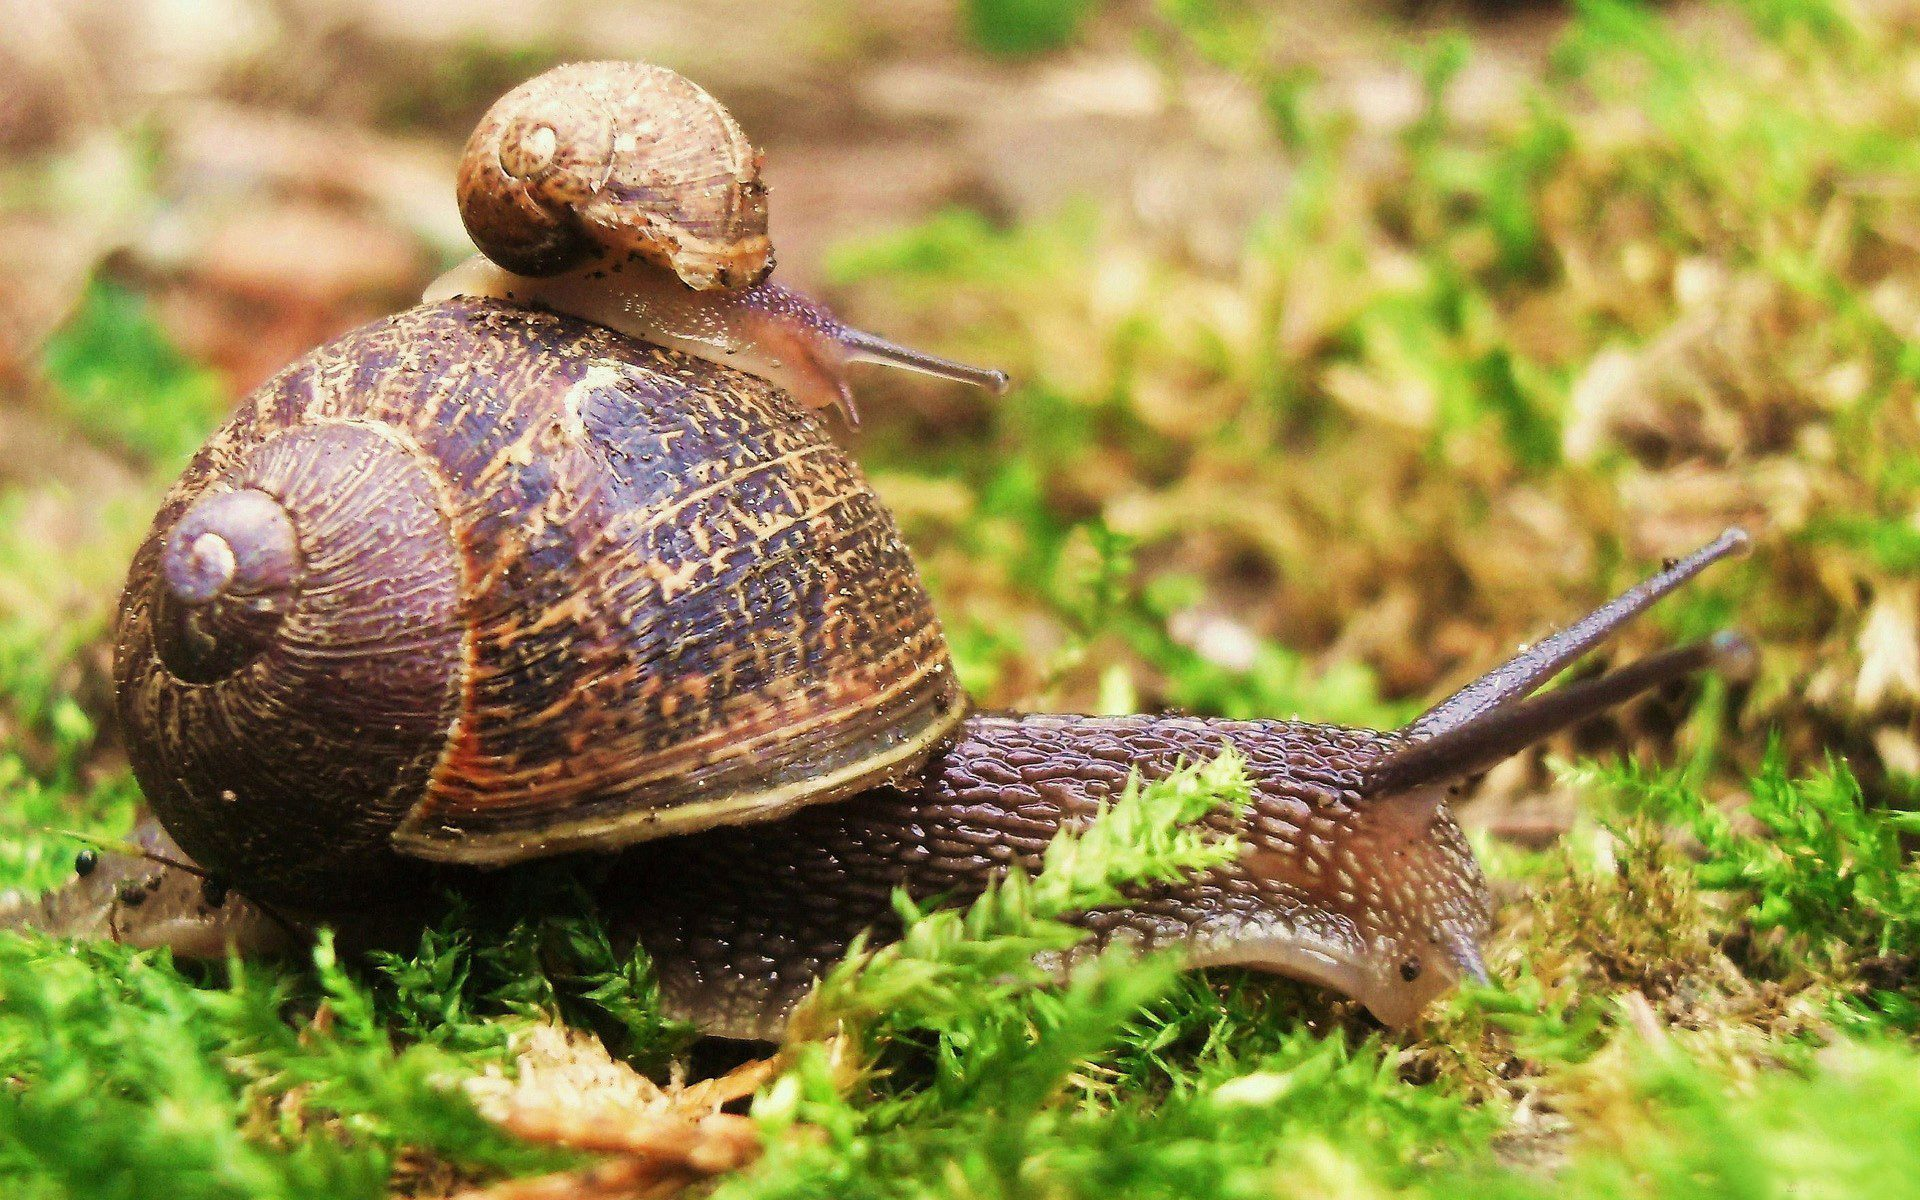 How do snail slime cosmetics really work?